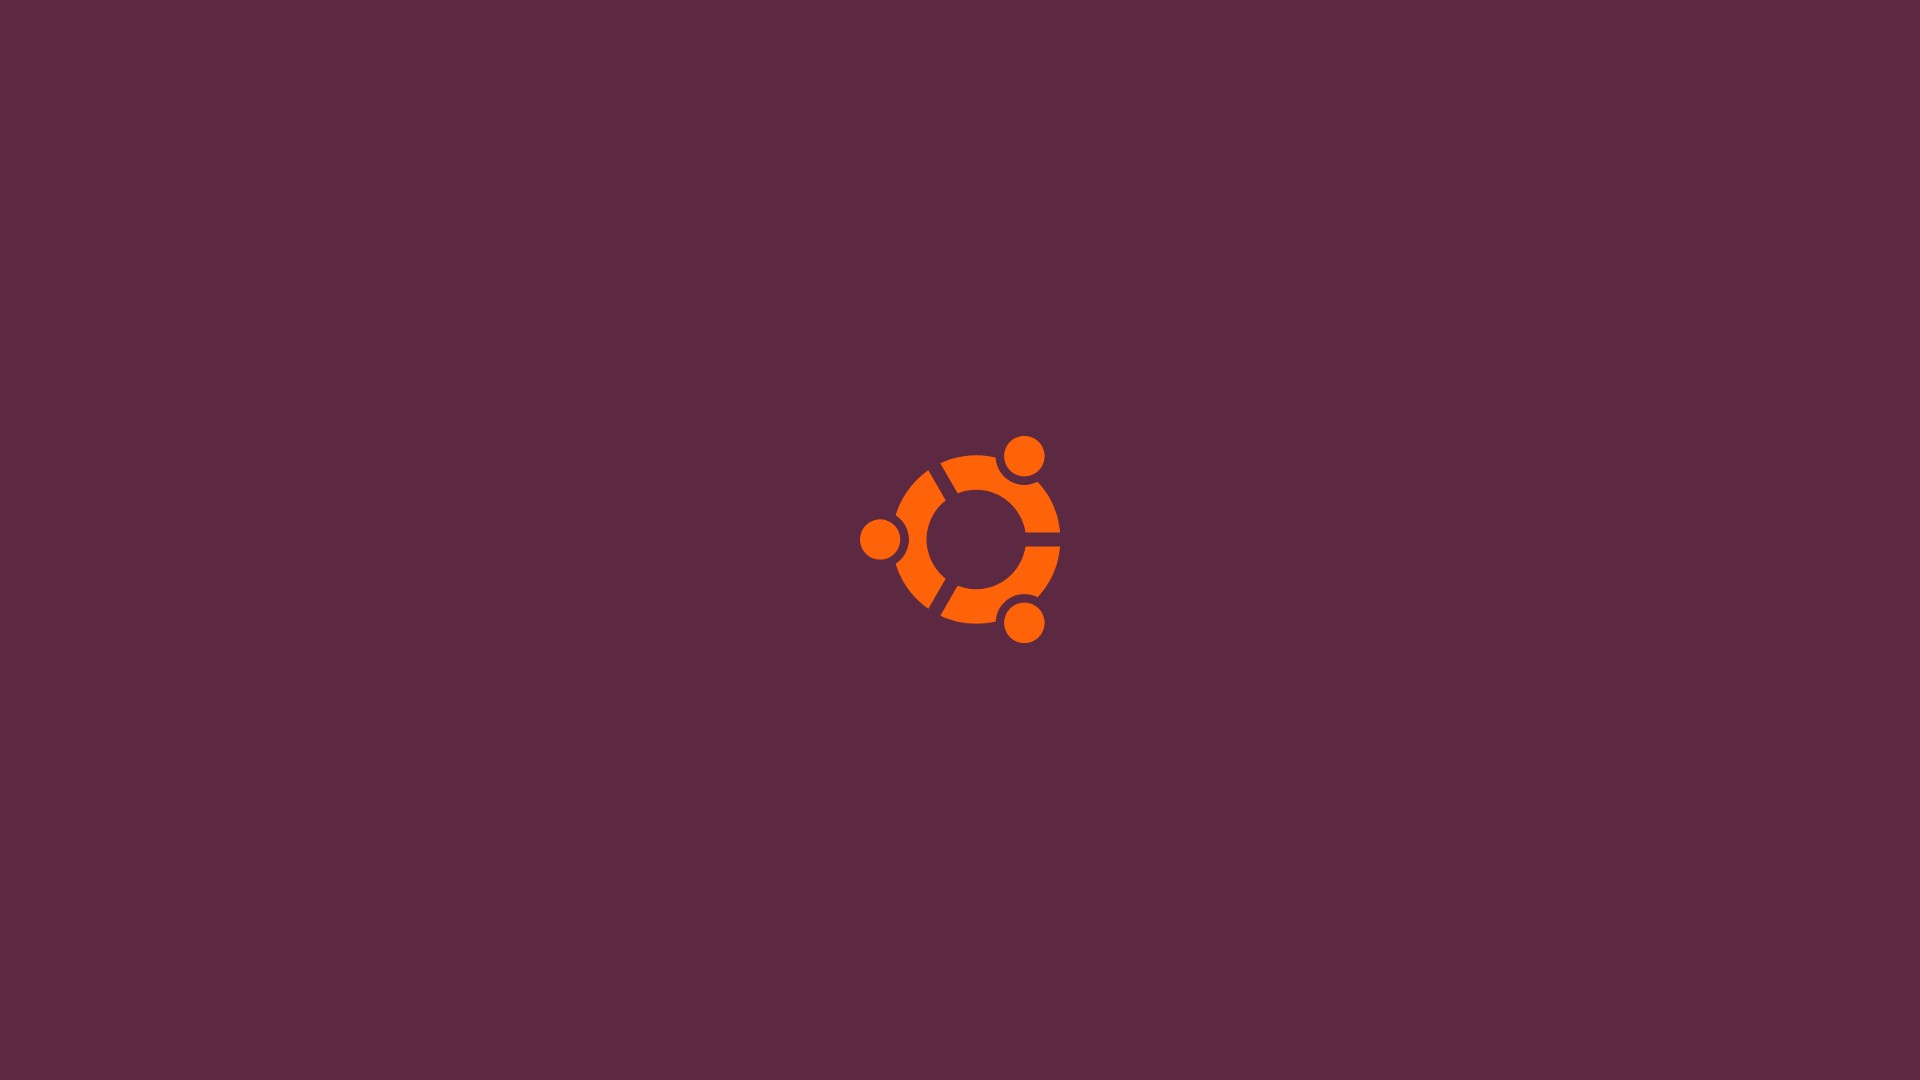 List Of Useful Apps For Ubuntu 20.04 LTS in 2021